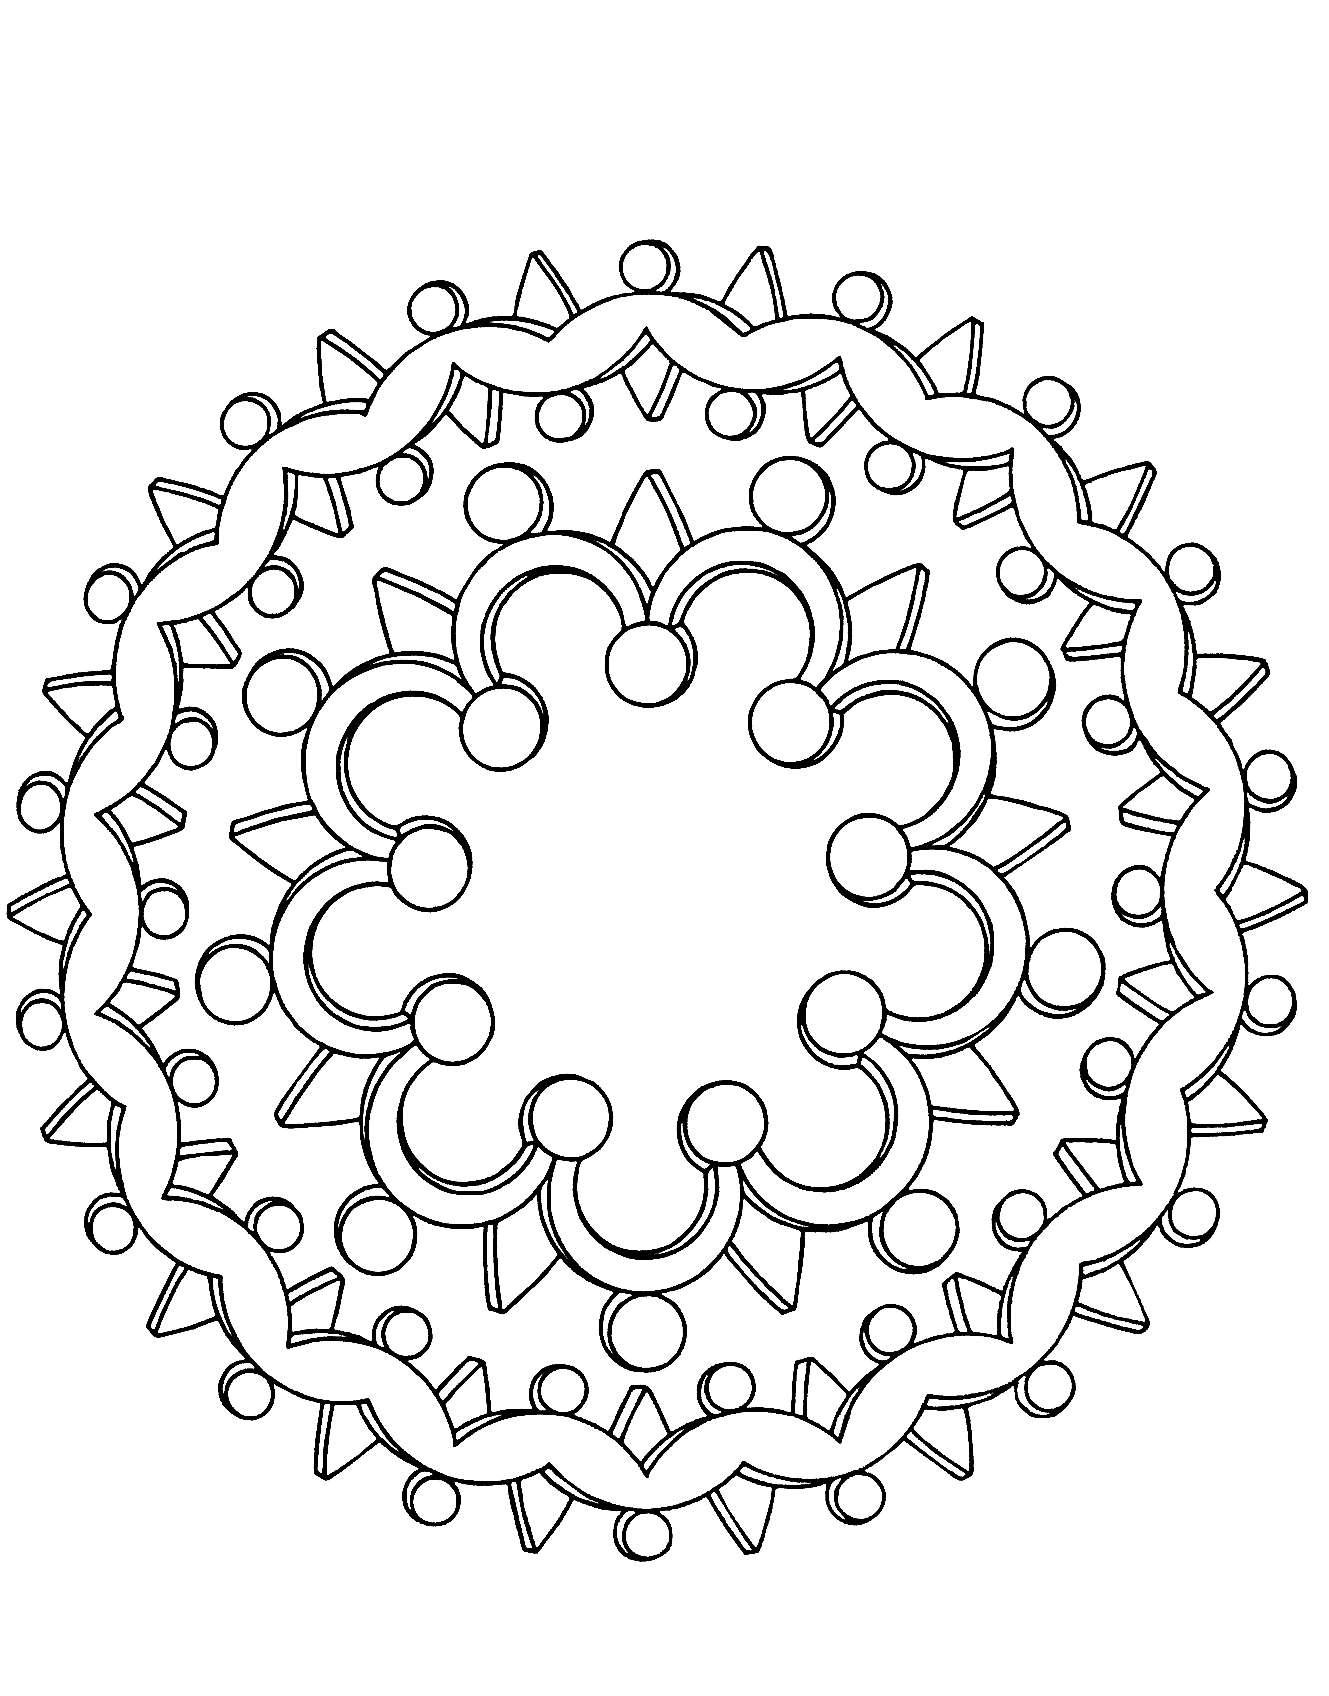 A perfect Mandala if you want simplicity or if you have little time to color. Feel free to let your instincts decide where to color, and what colors to choose.